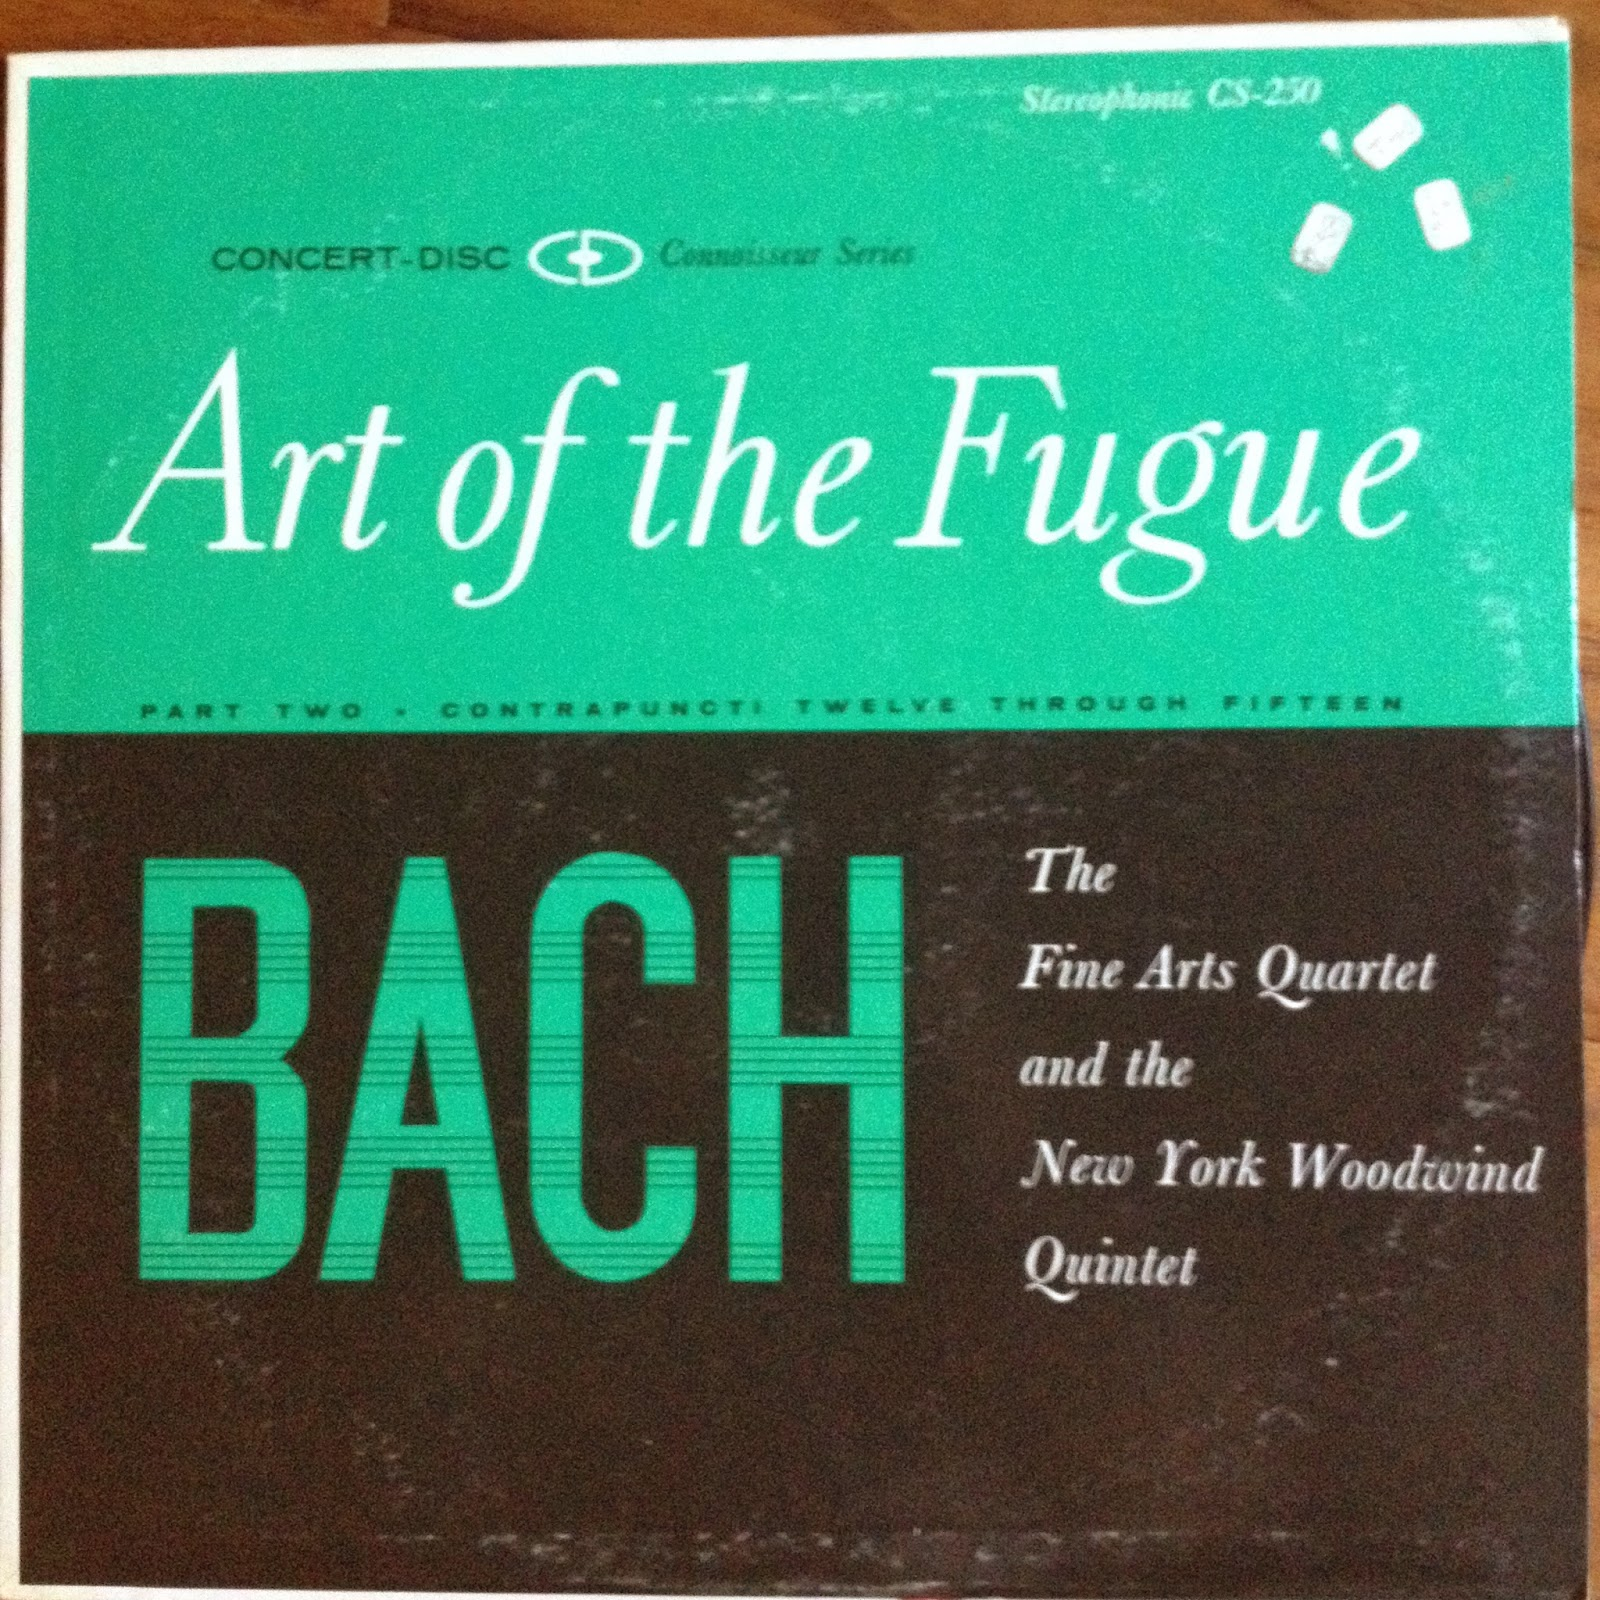 LP Bach: Art of the Fuge part 2